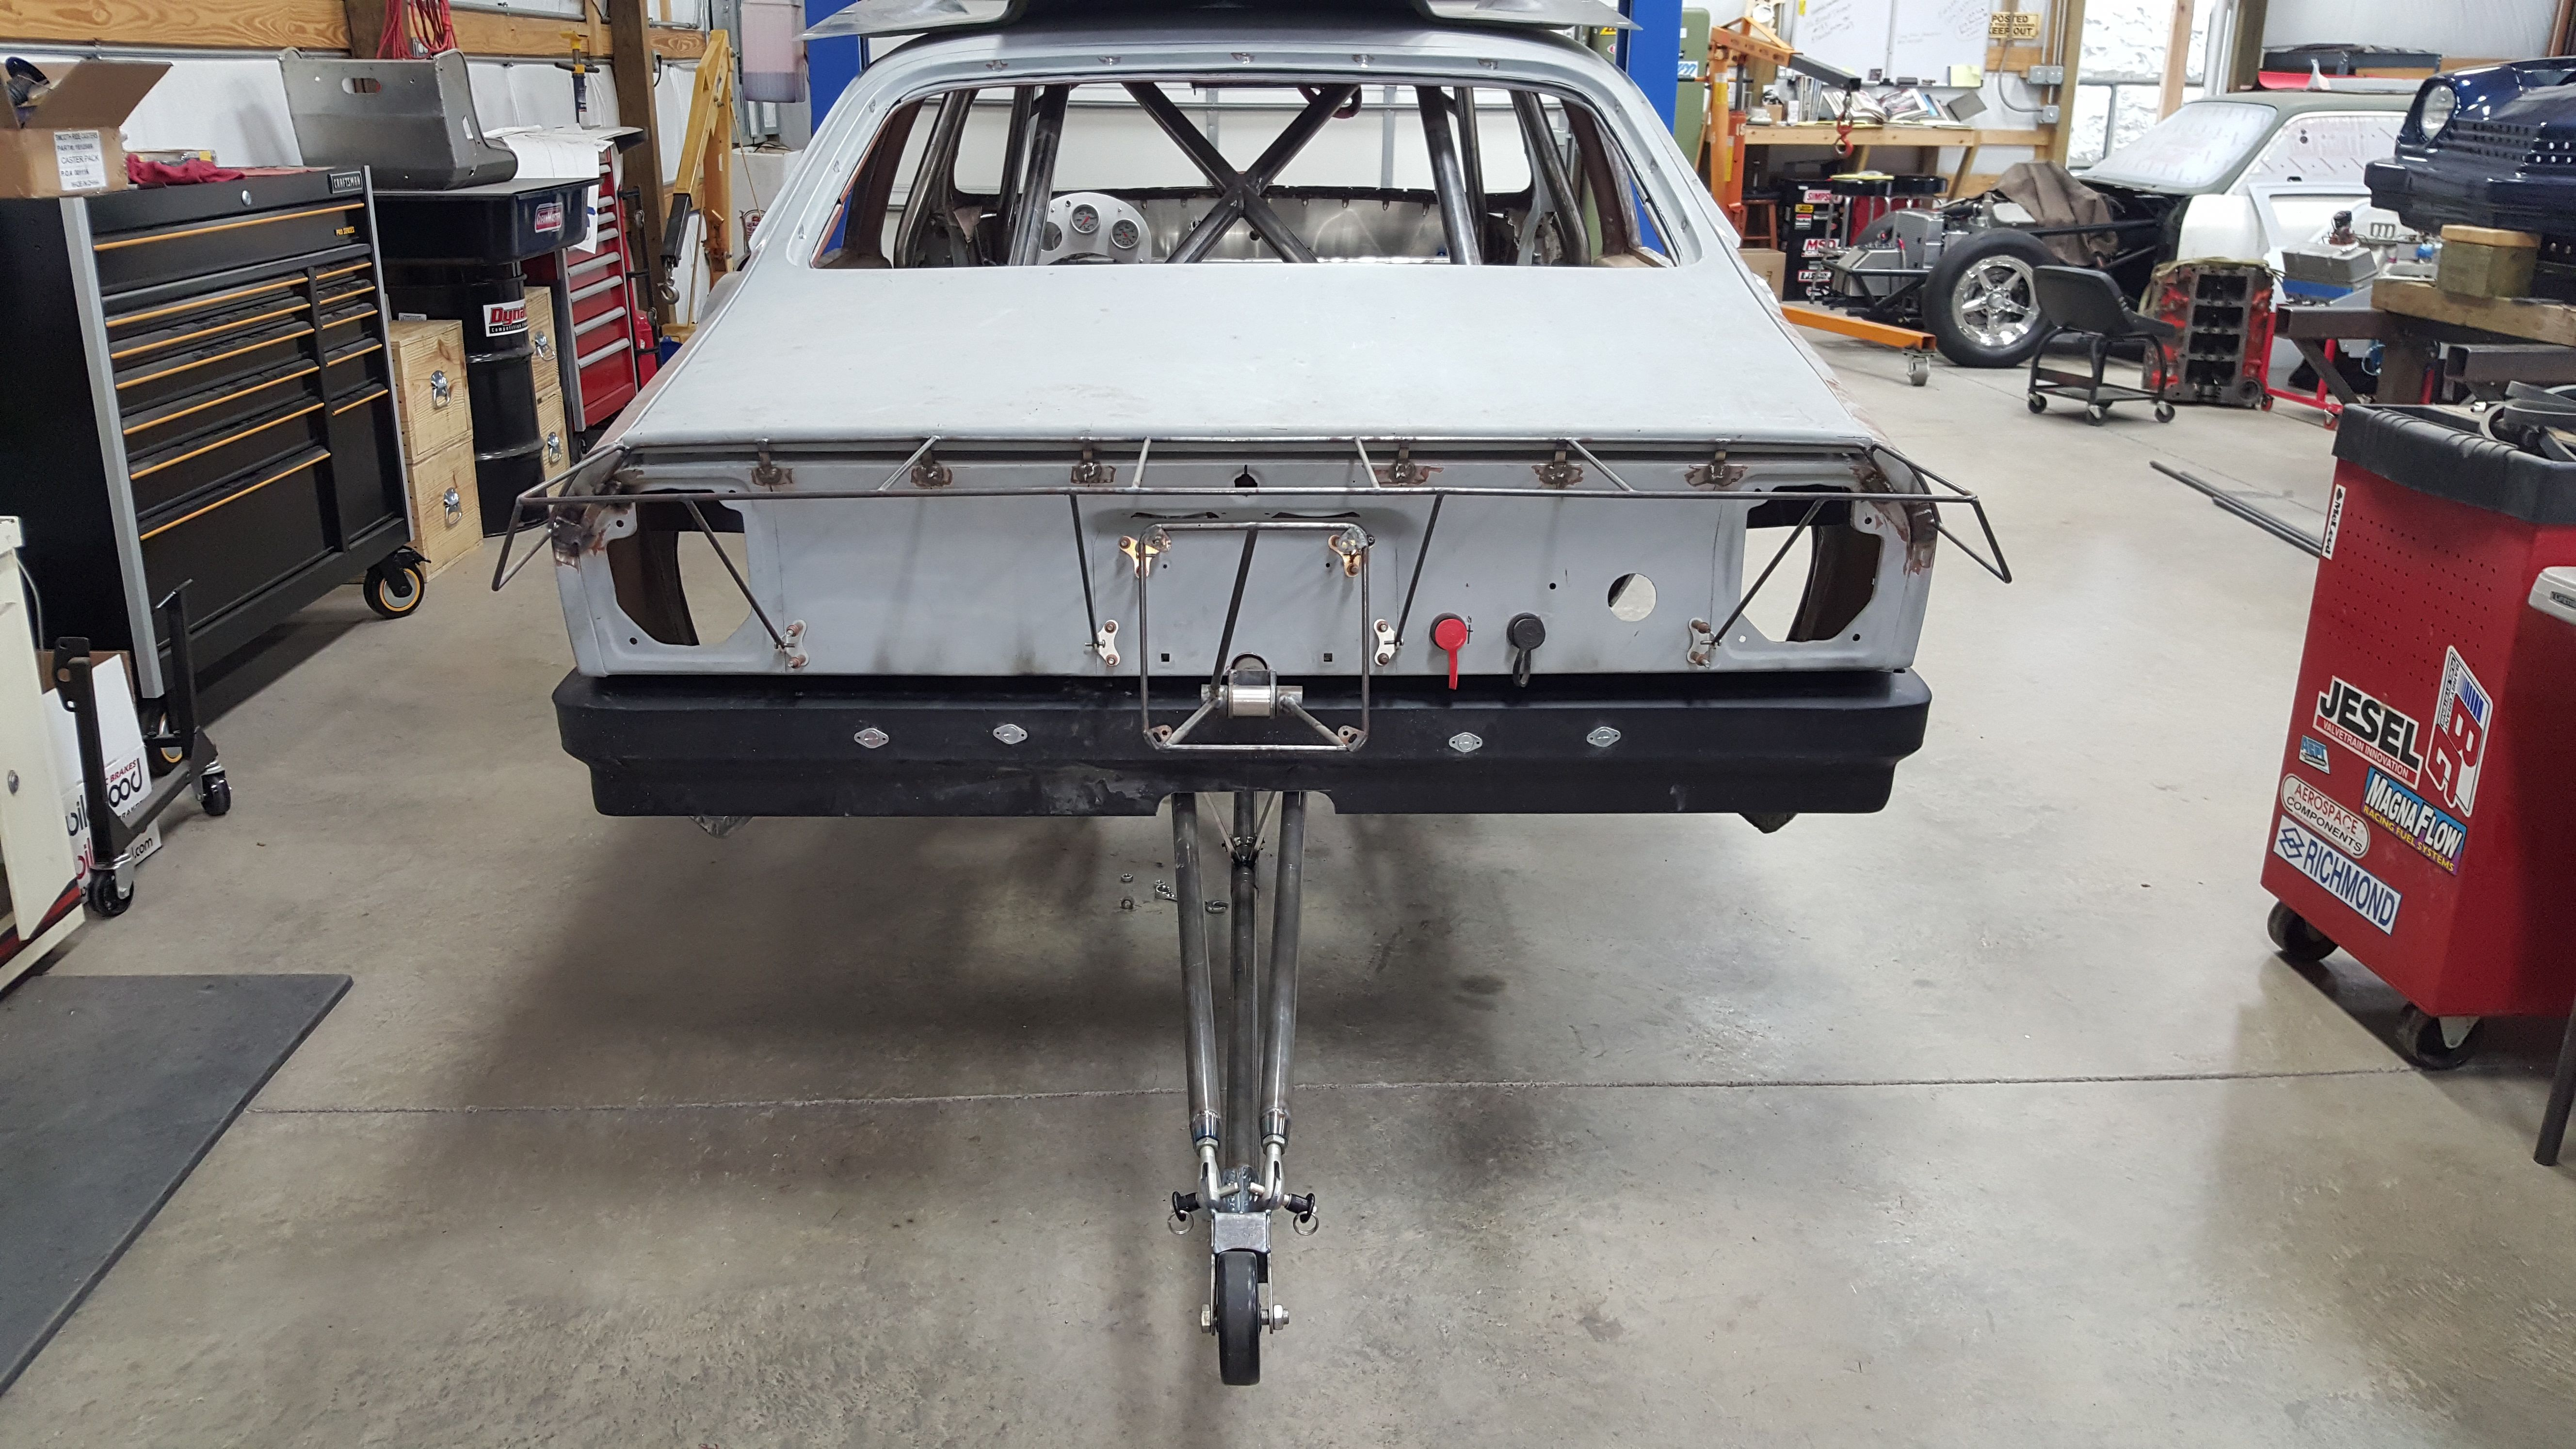 Chevy Vega Projects For Sale | Drag Racing | Drag cars, Tube